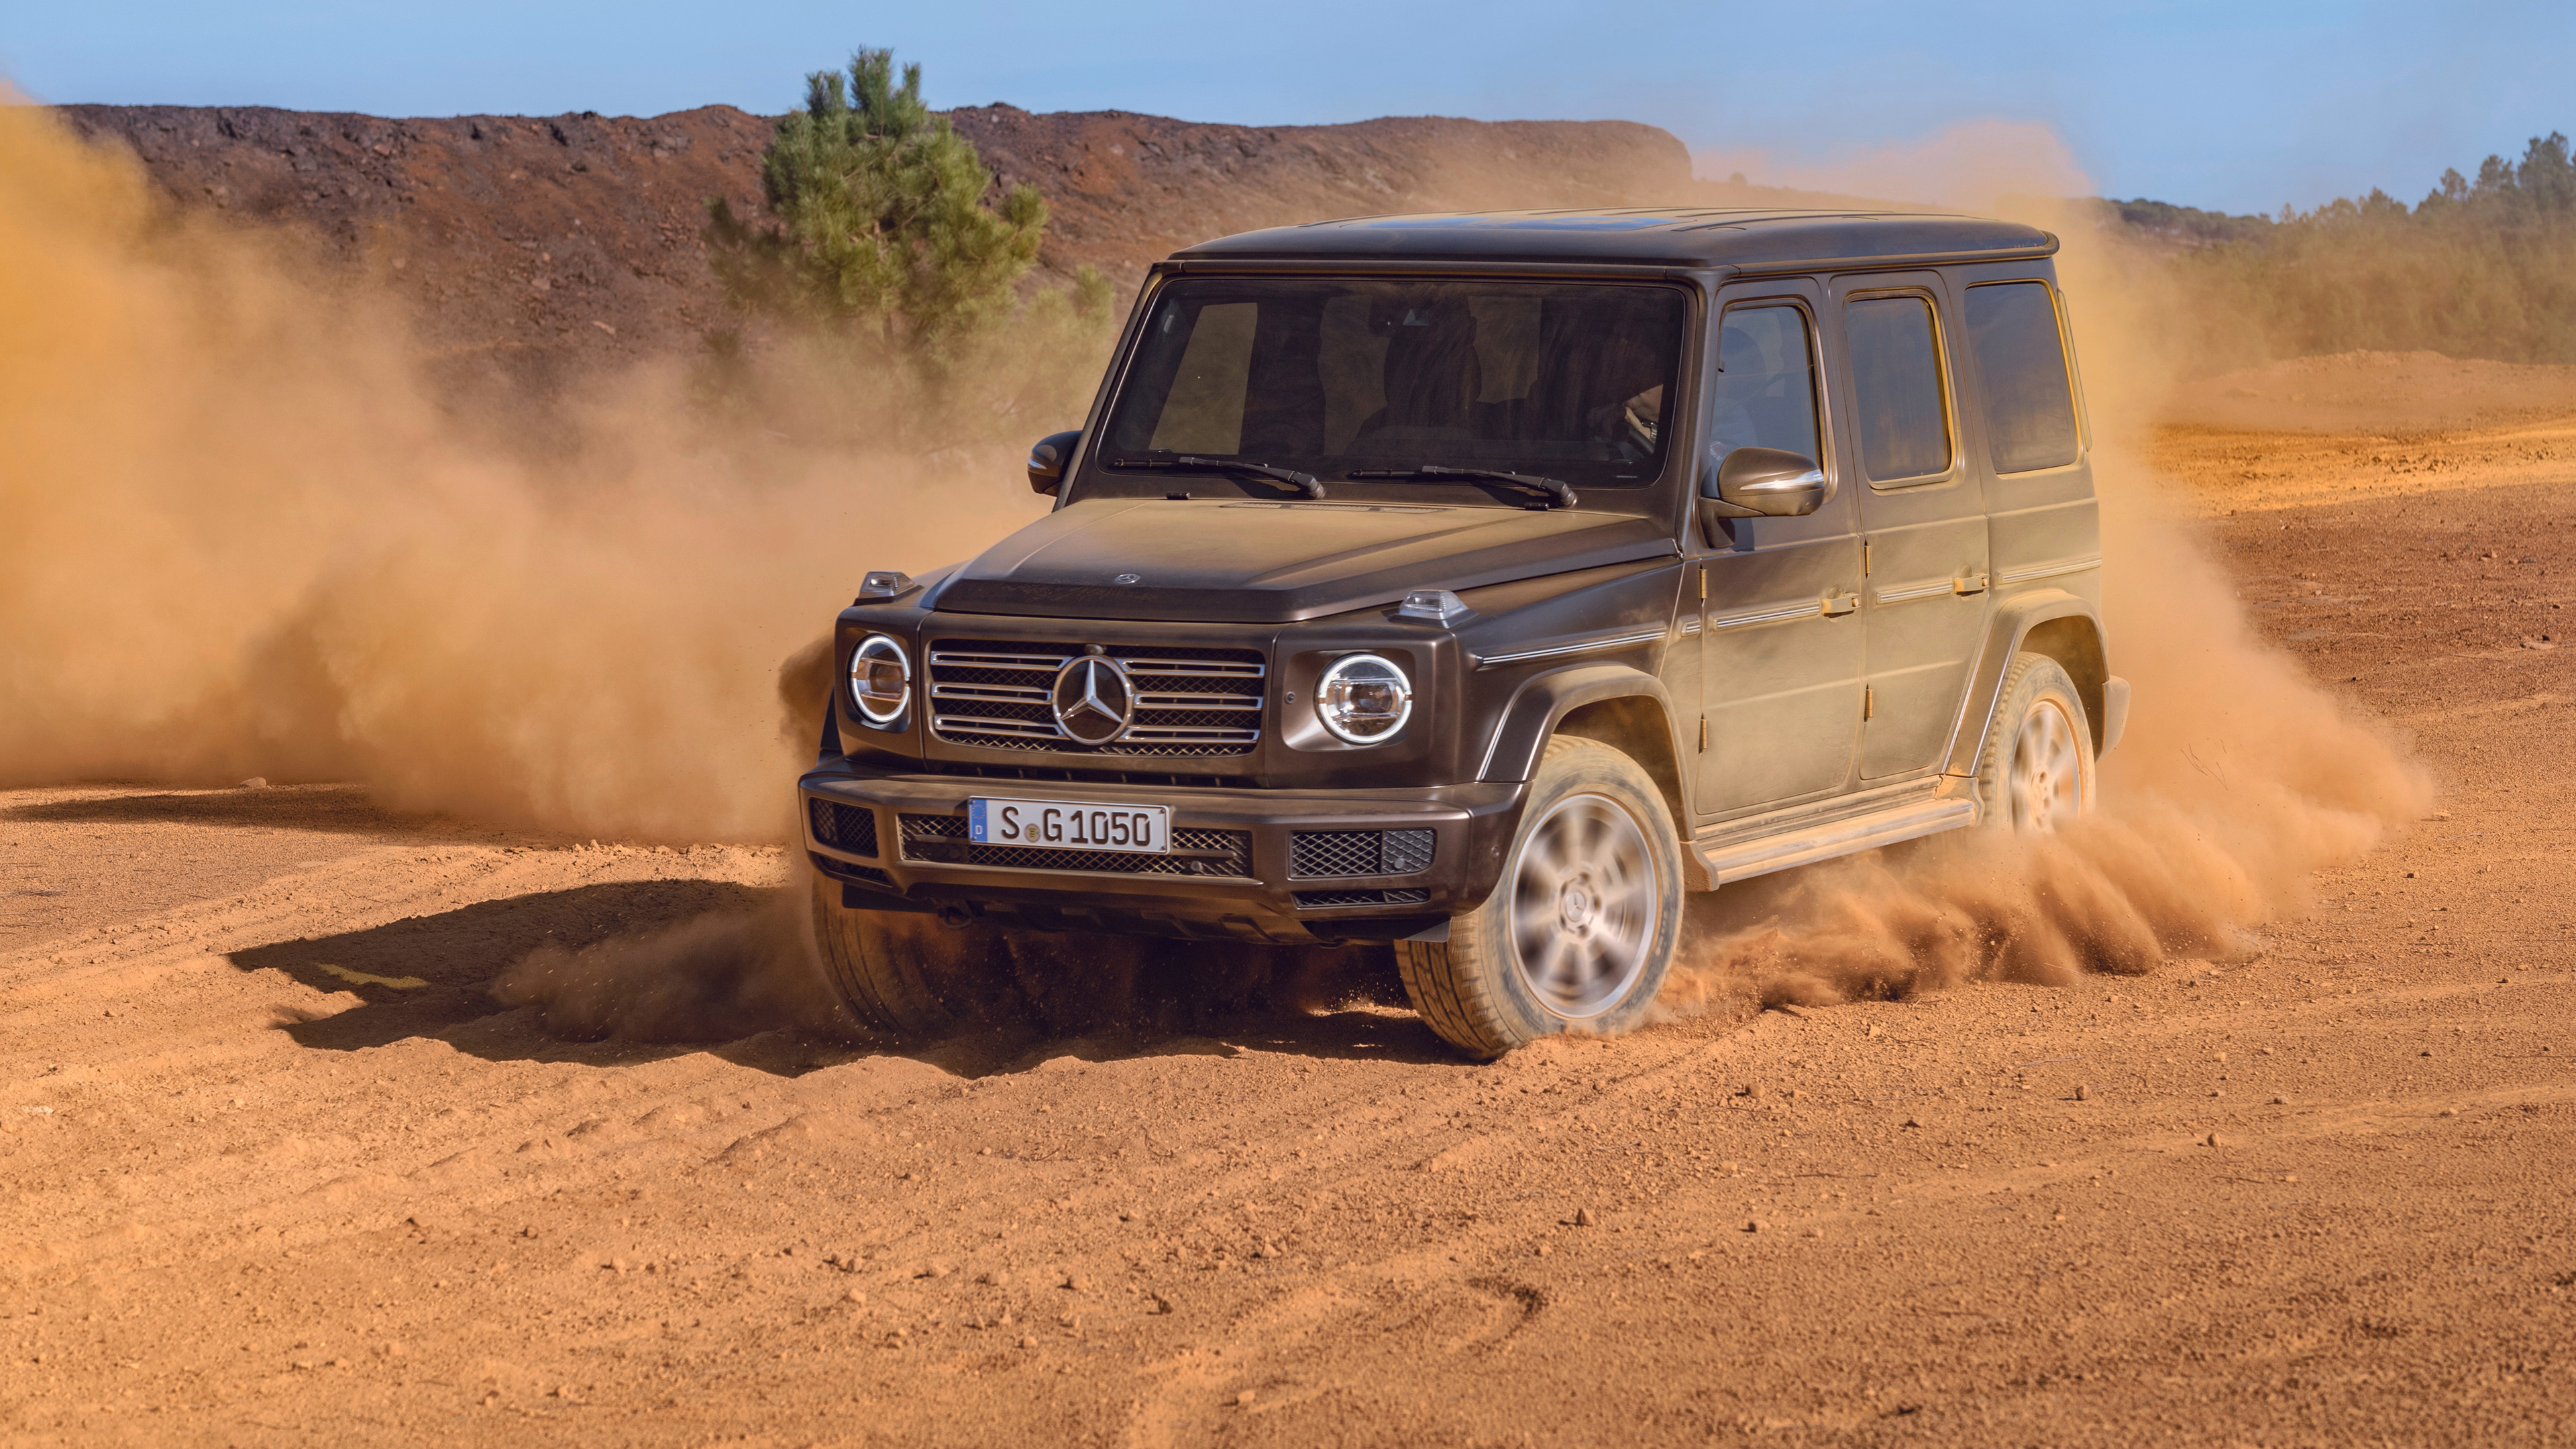 4k 2019 mercedes g class 1539109183 - 4k 2019 Mercedes G Class - suv wallpapers, mercedes wallpapers, mercedes g class wallpapers, mercedes benz wallpapers, hd-wallpapers, cars wallpapers, 4k-wallpapers, 2019 cars wallpapers